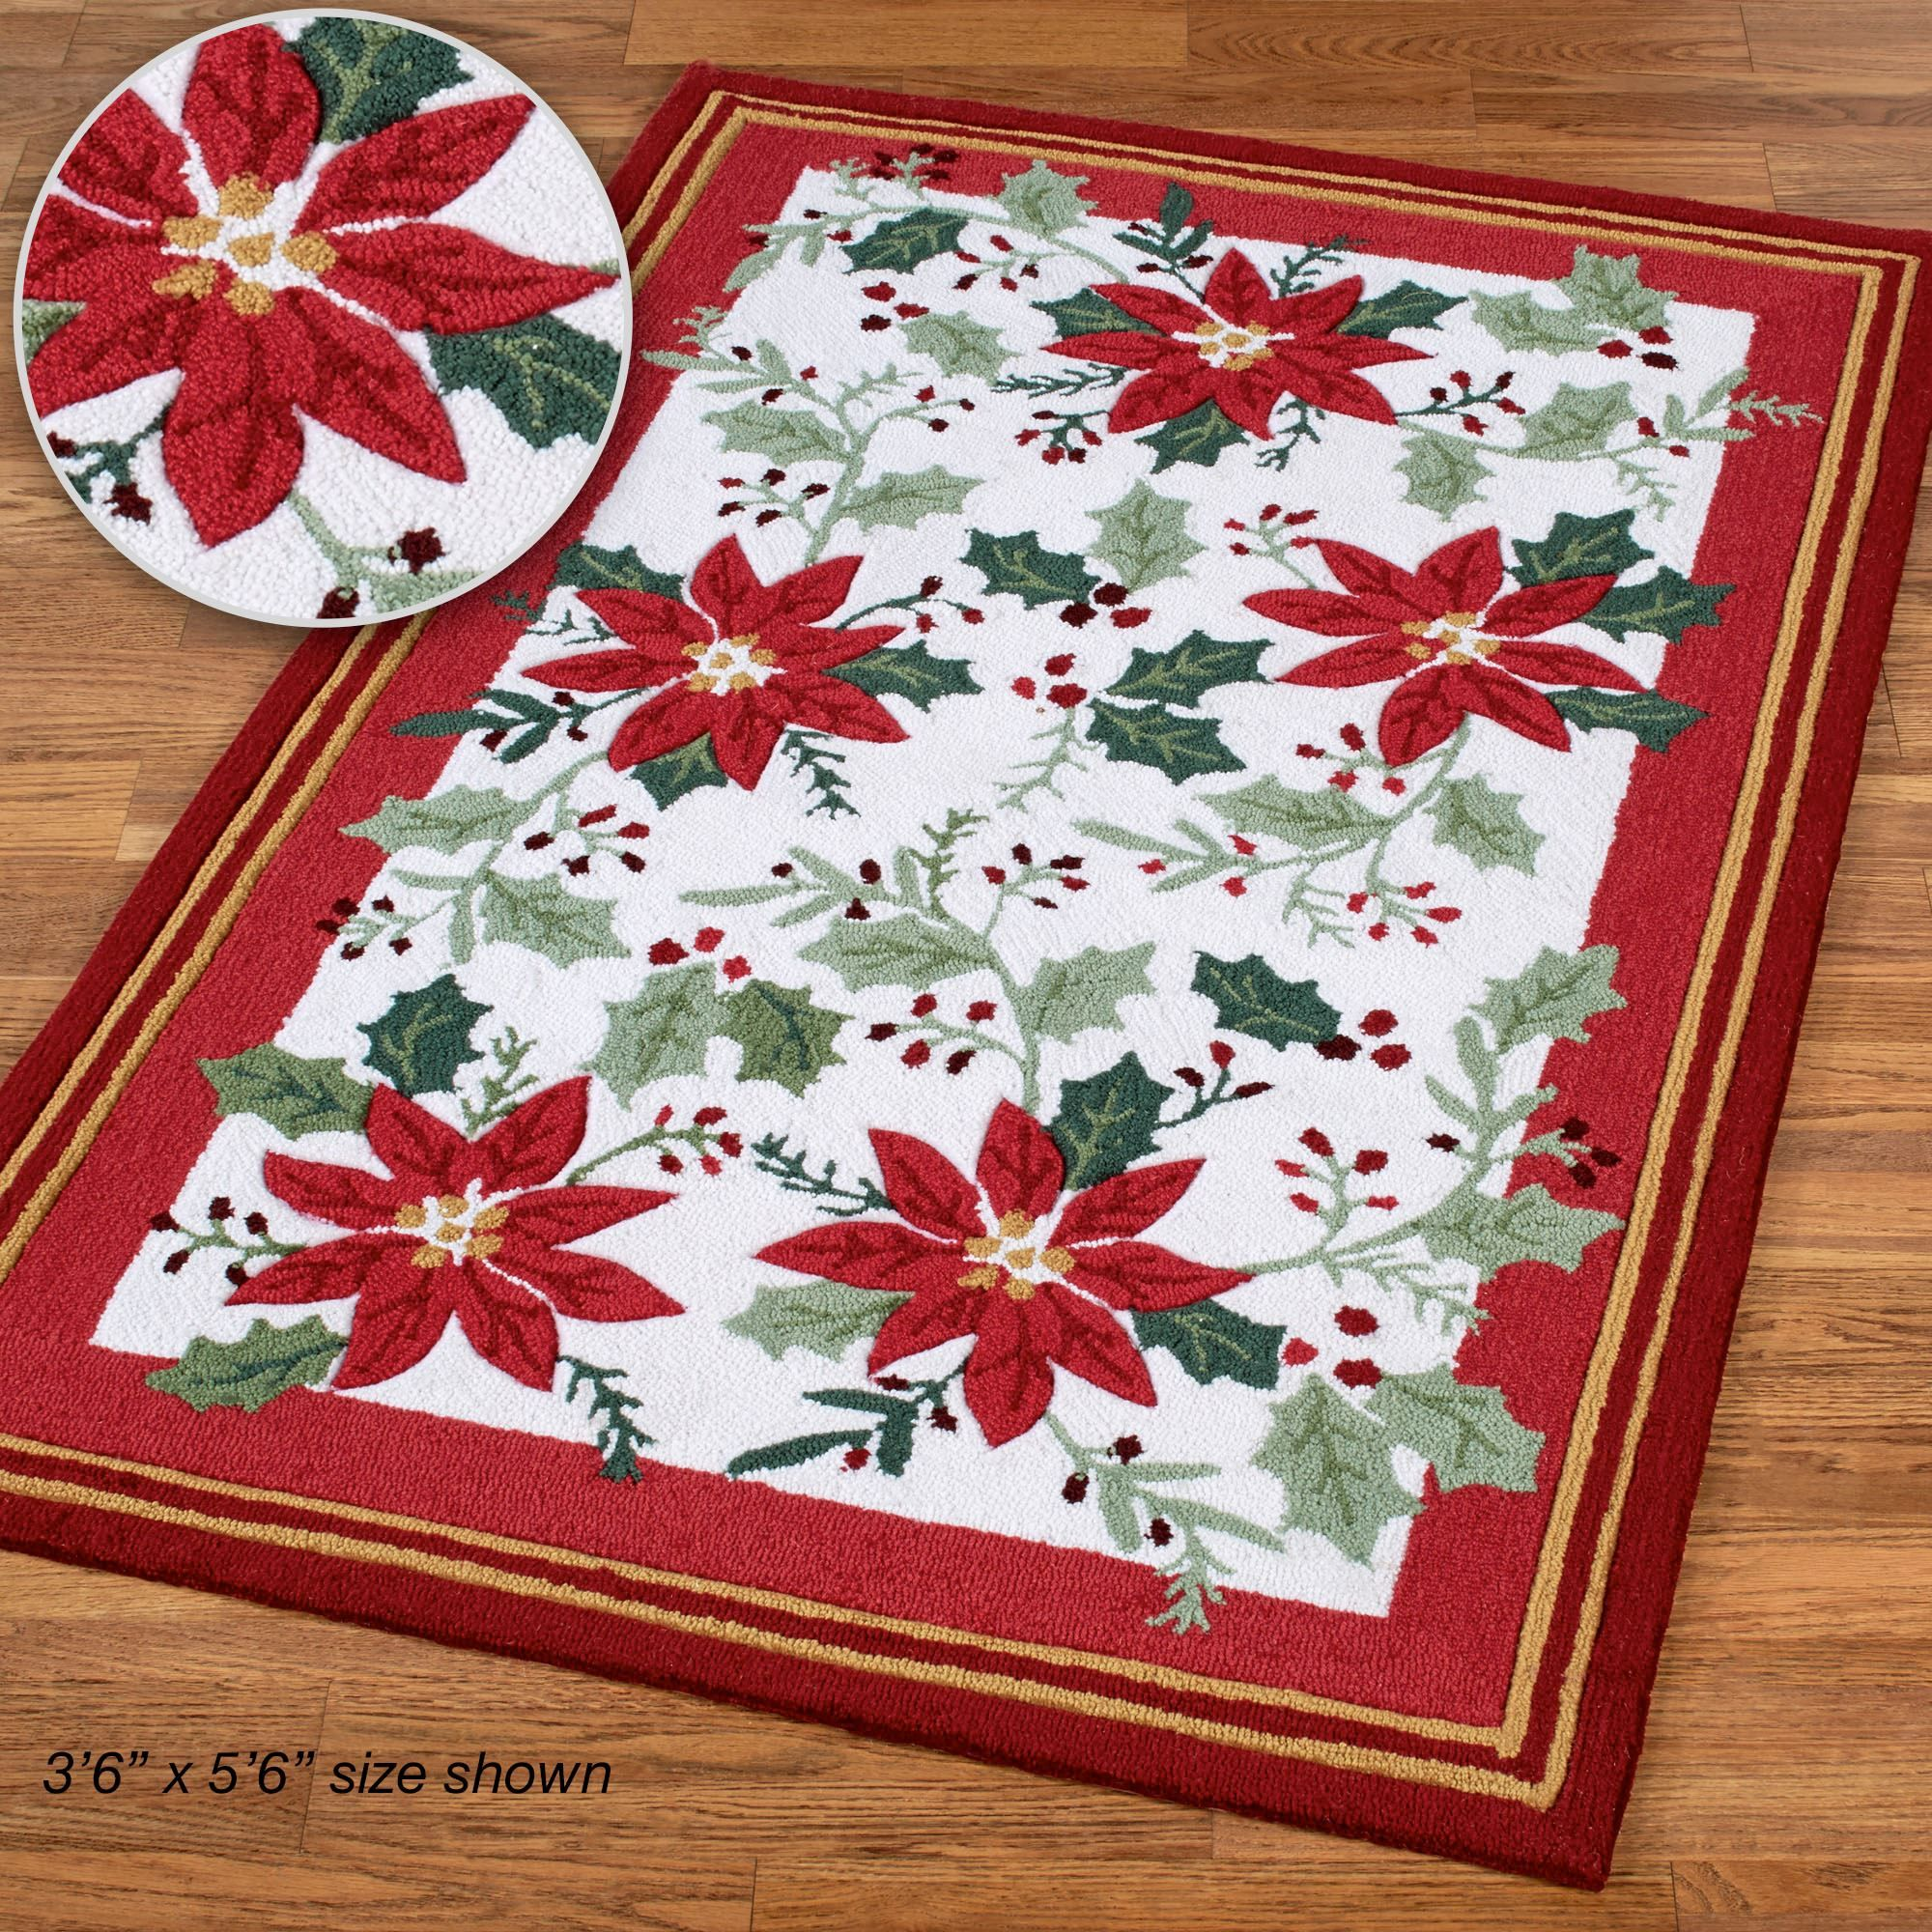 Poinsettia and Holly Holiday Area Rugs | PLACEMAT | Pinterest ...